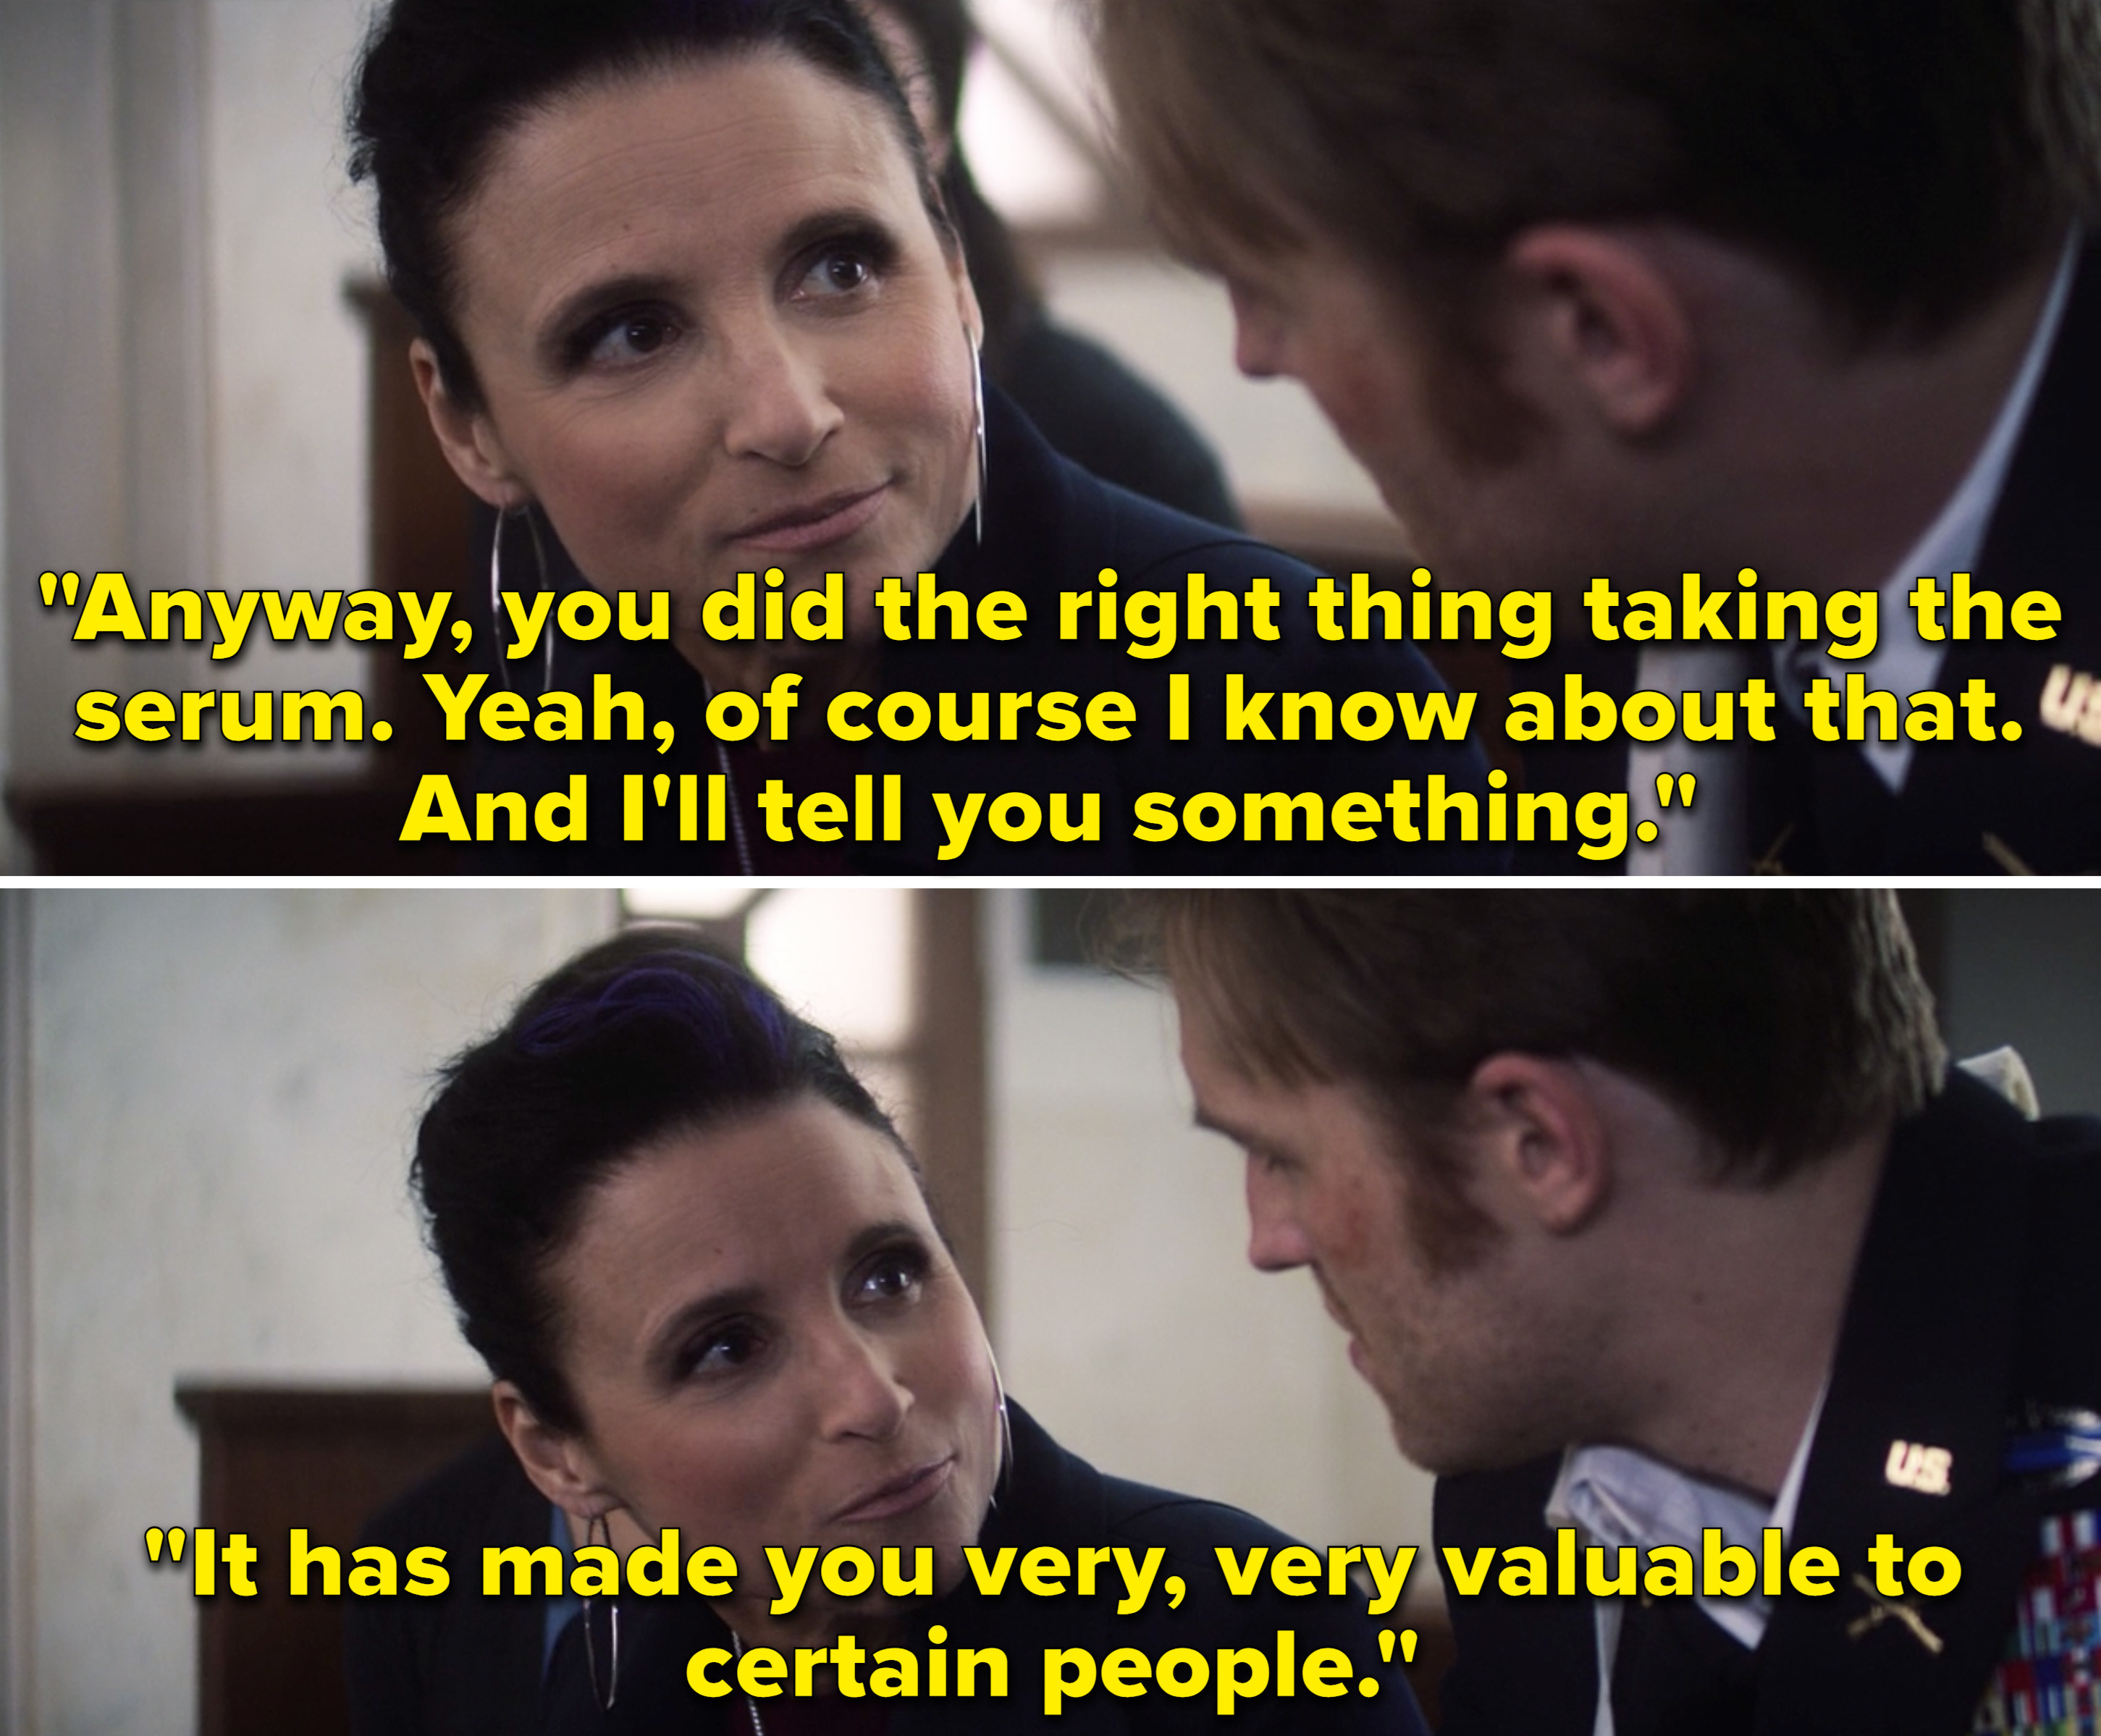 """Val telling John that taking the serum made him """"very, very valuable to certain people"""""""